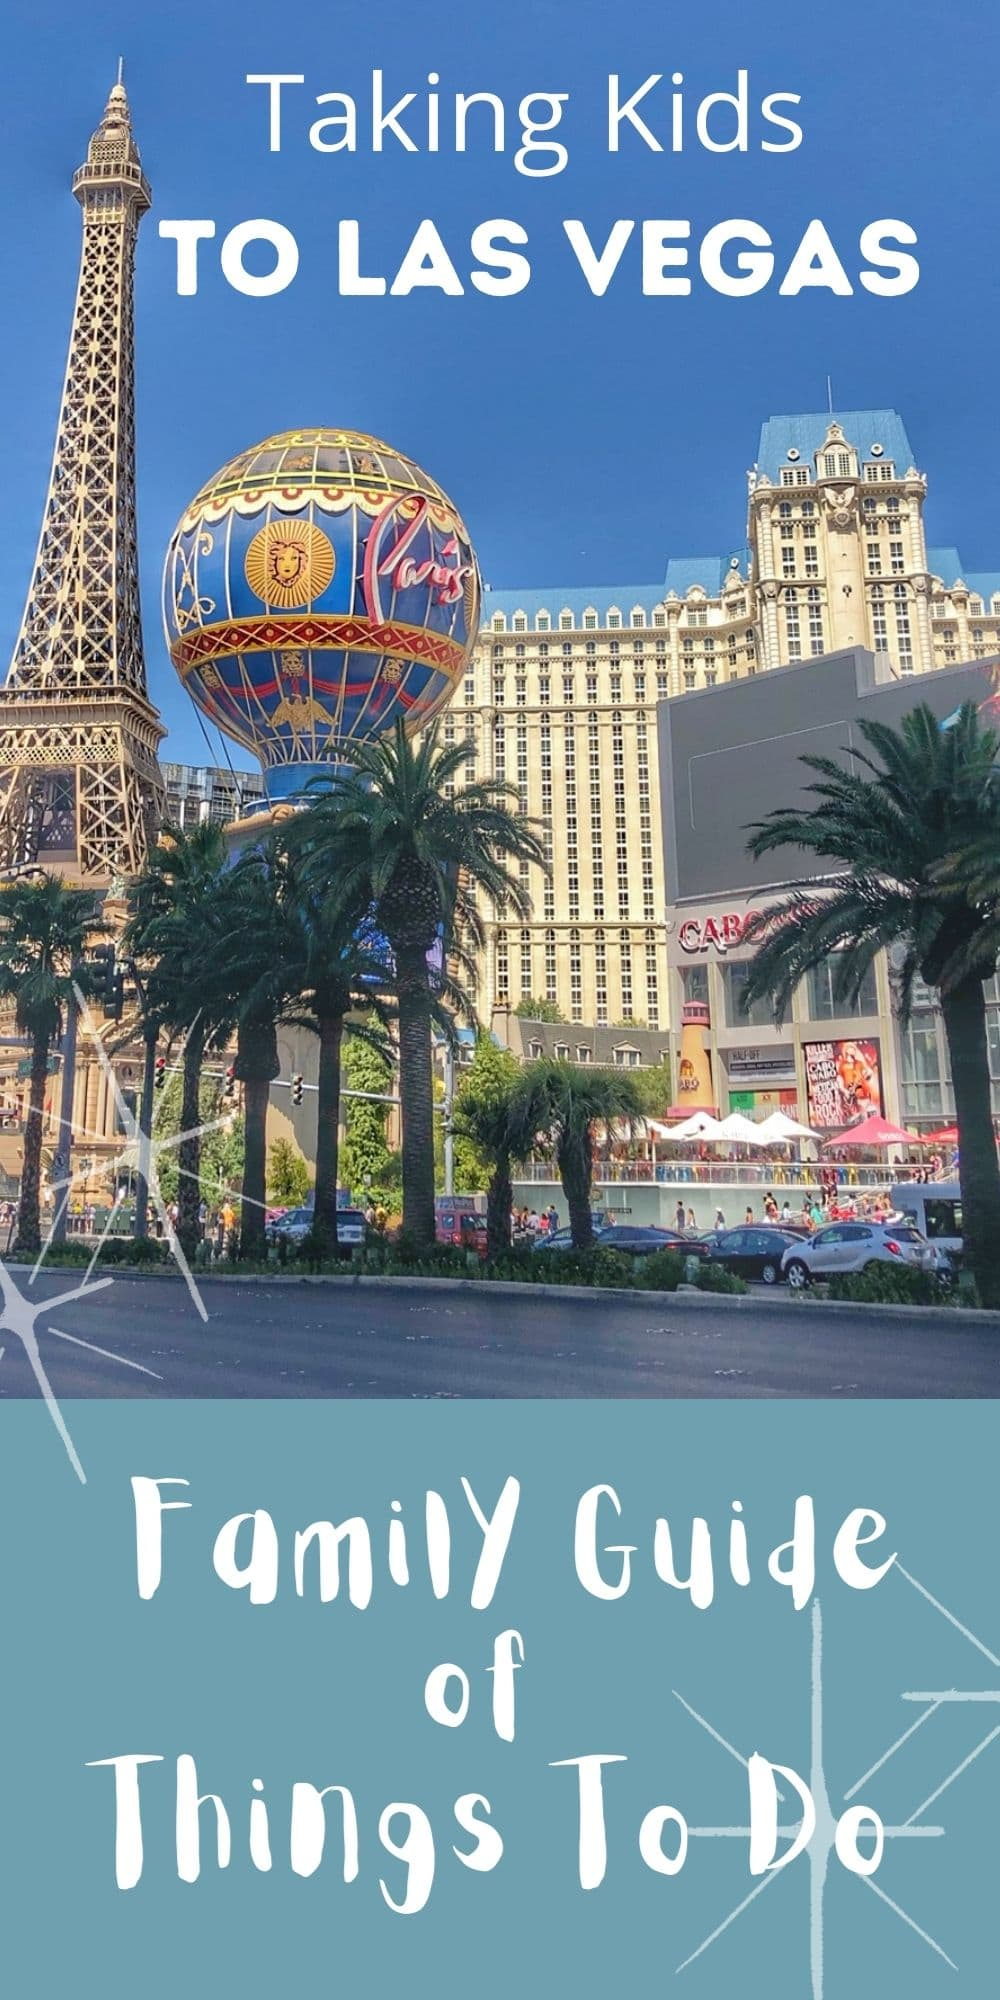 Taking Kids to Las Vegas - Family Guide of Things to Do